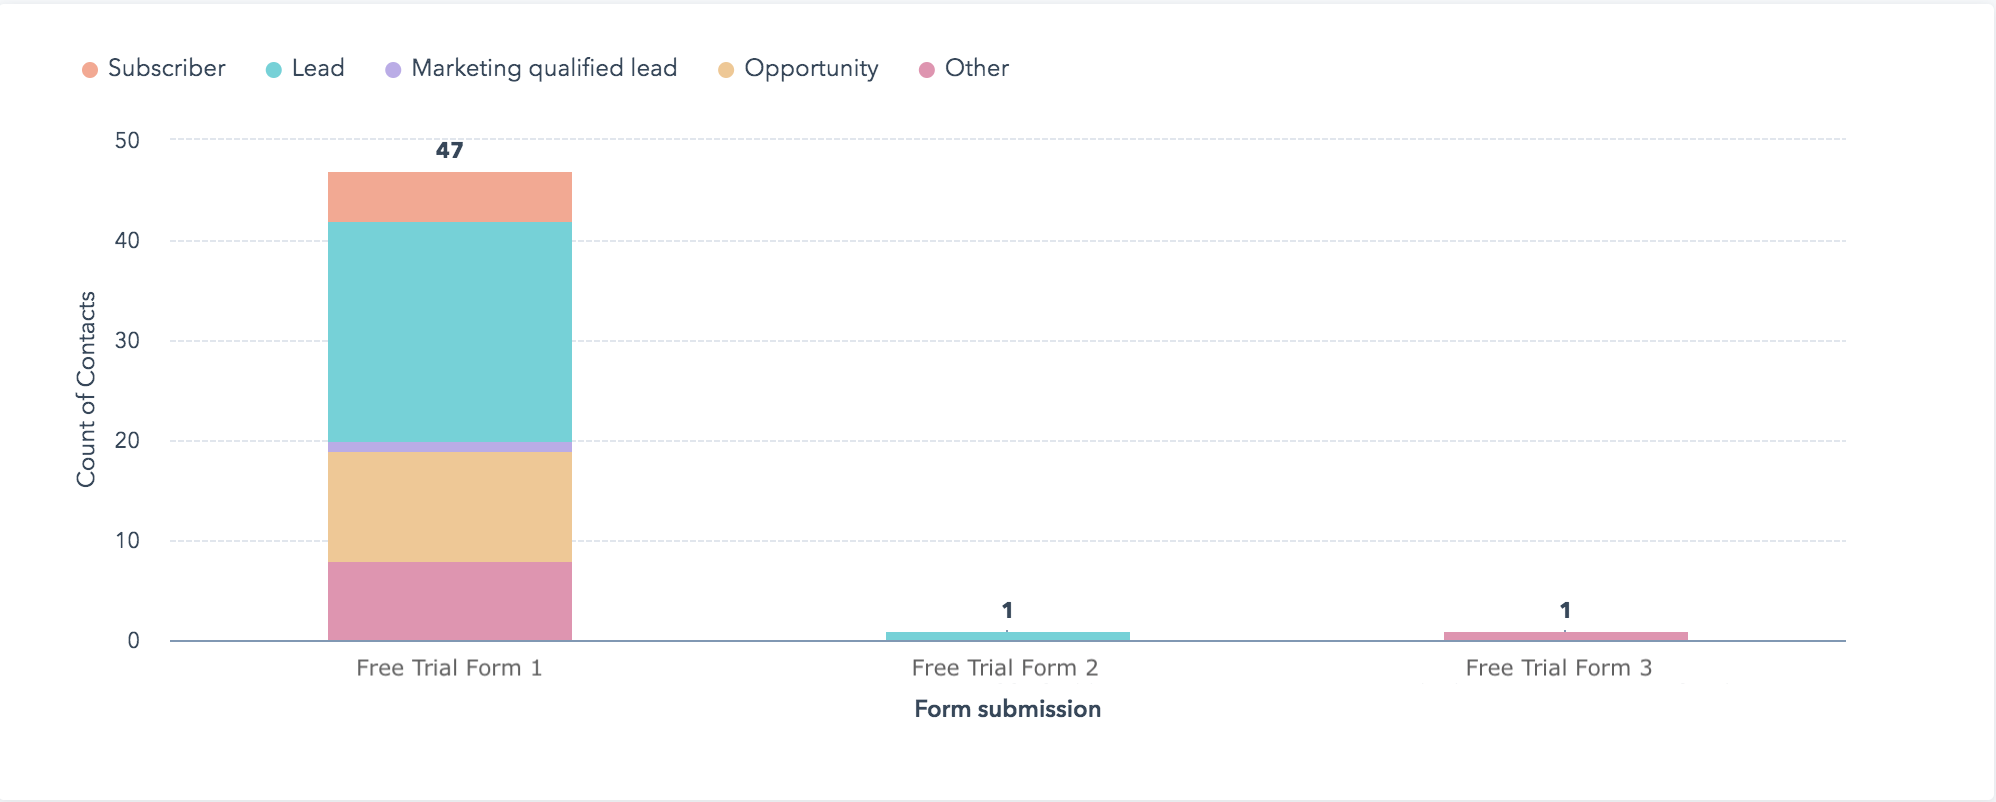 Free Trial to Paid Customer Custom Dashboard Report in HubSpot